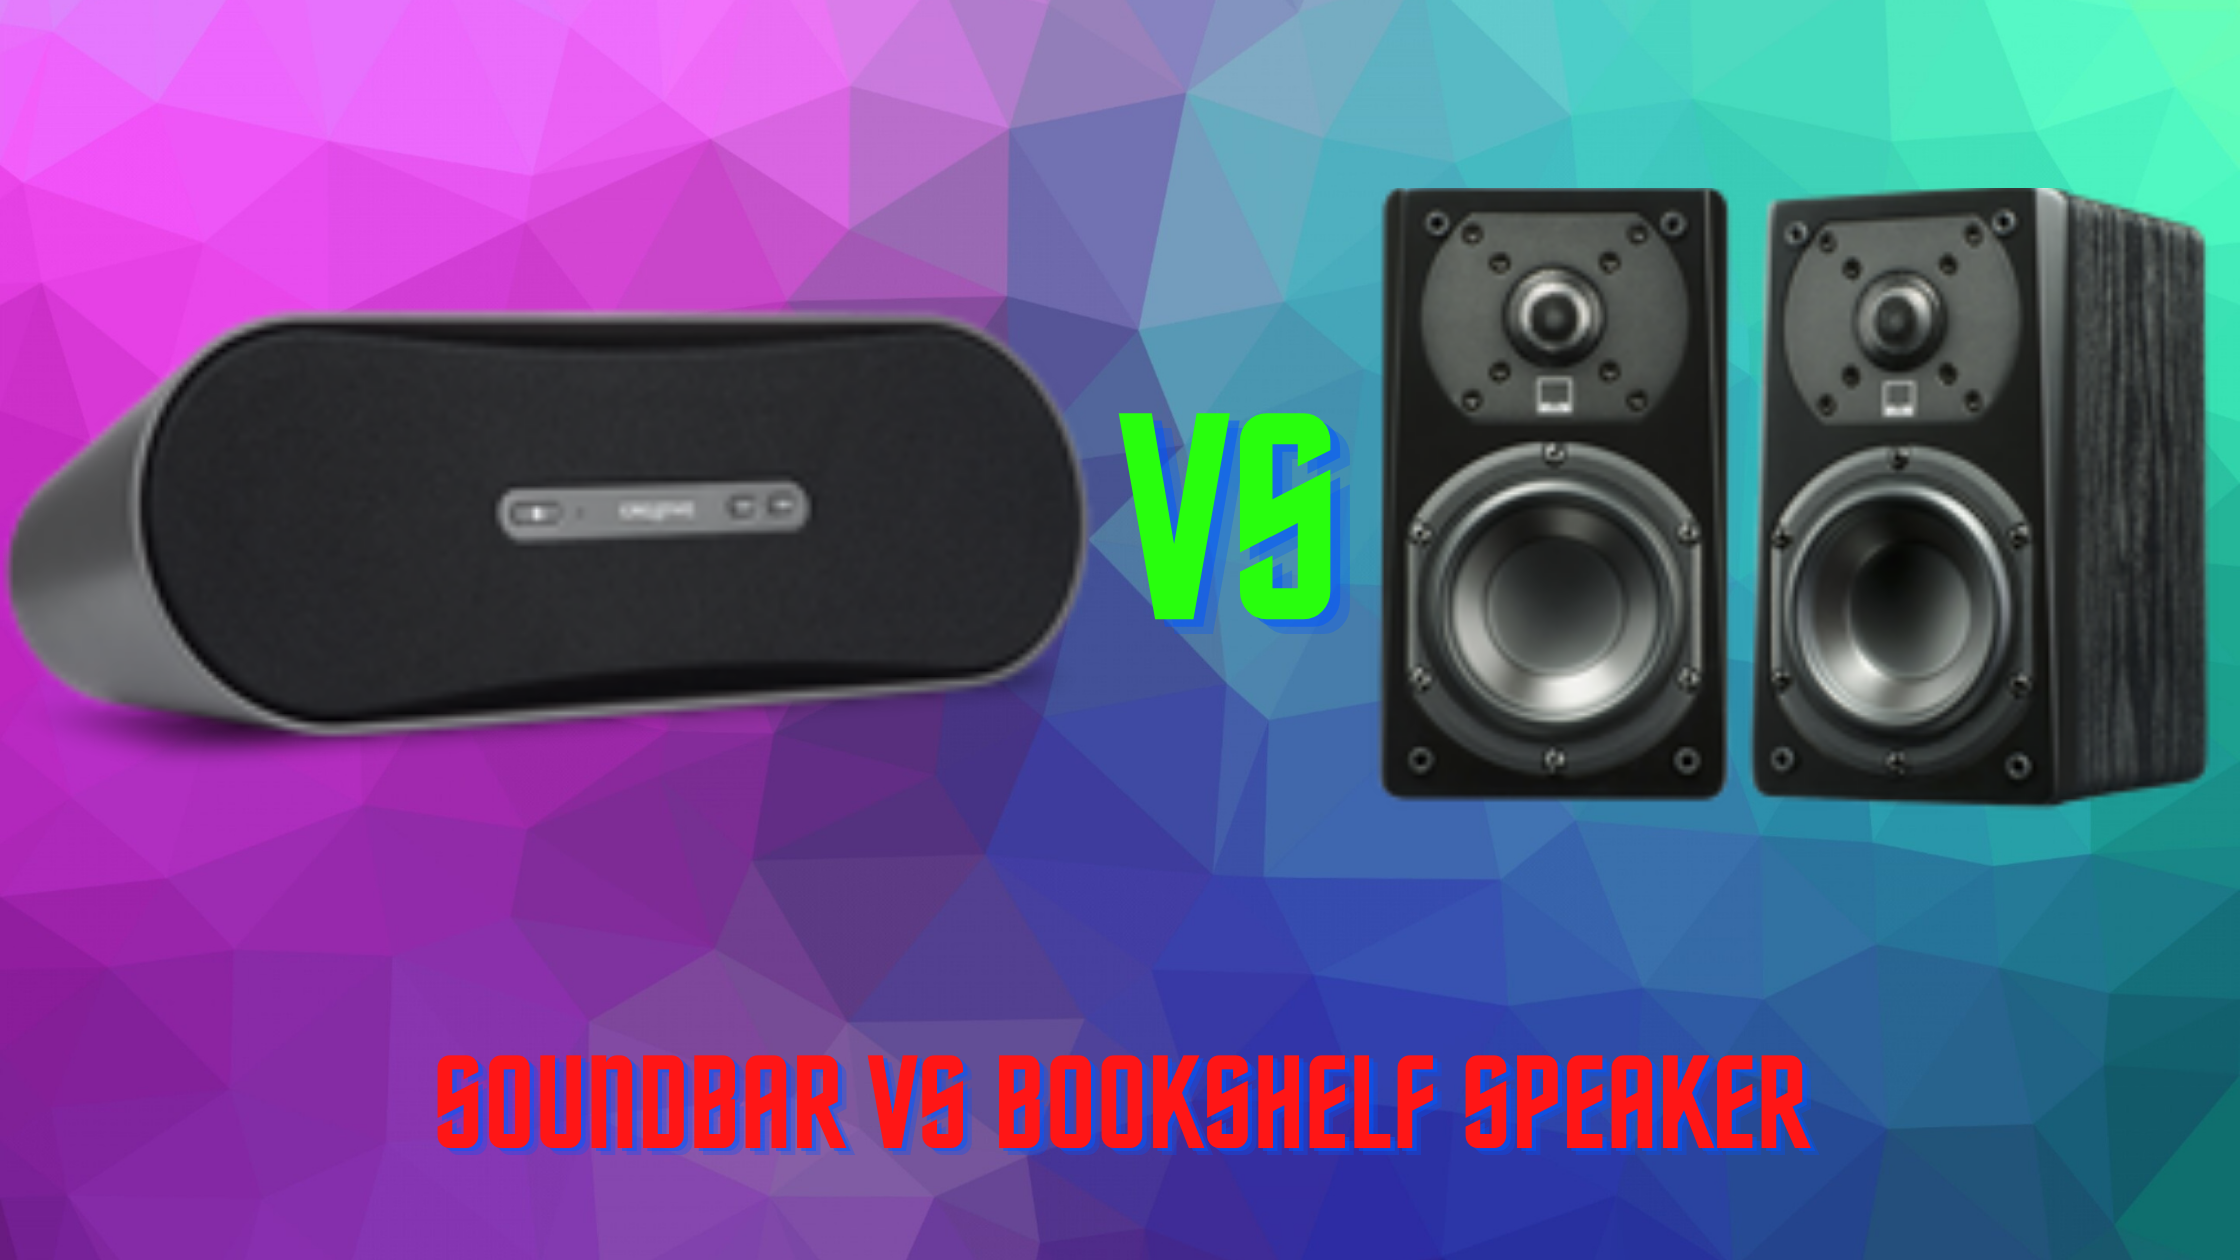 Soundbar vs Bookshelf speakers